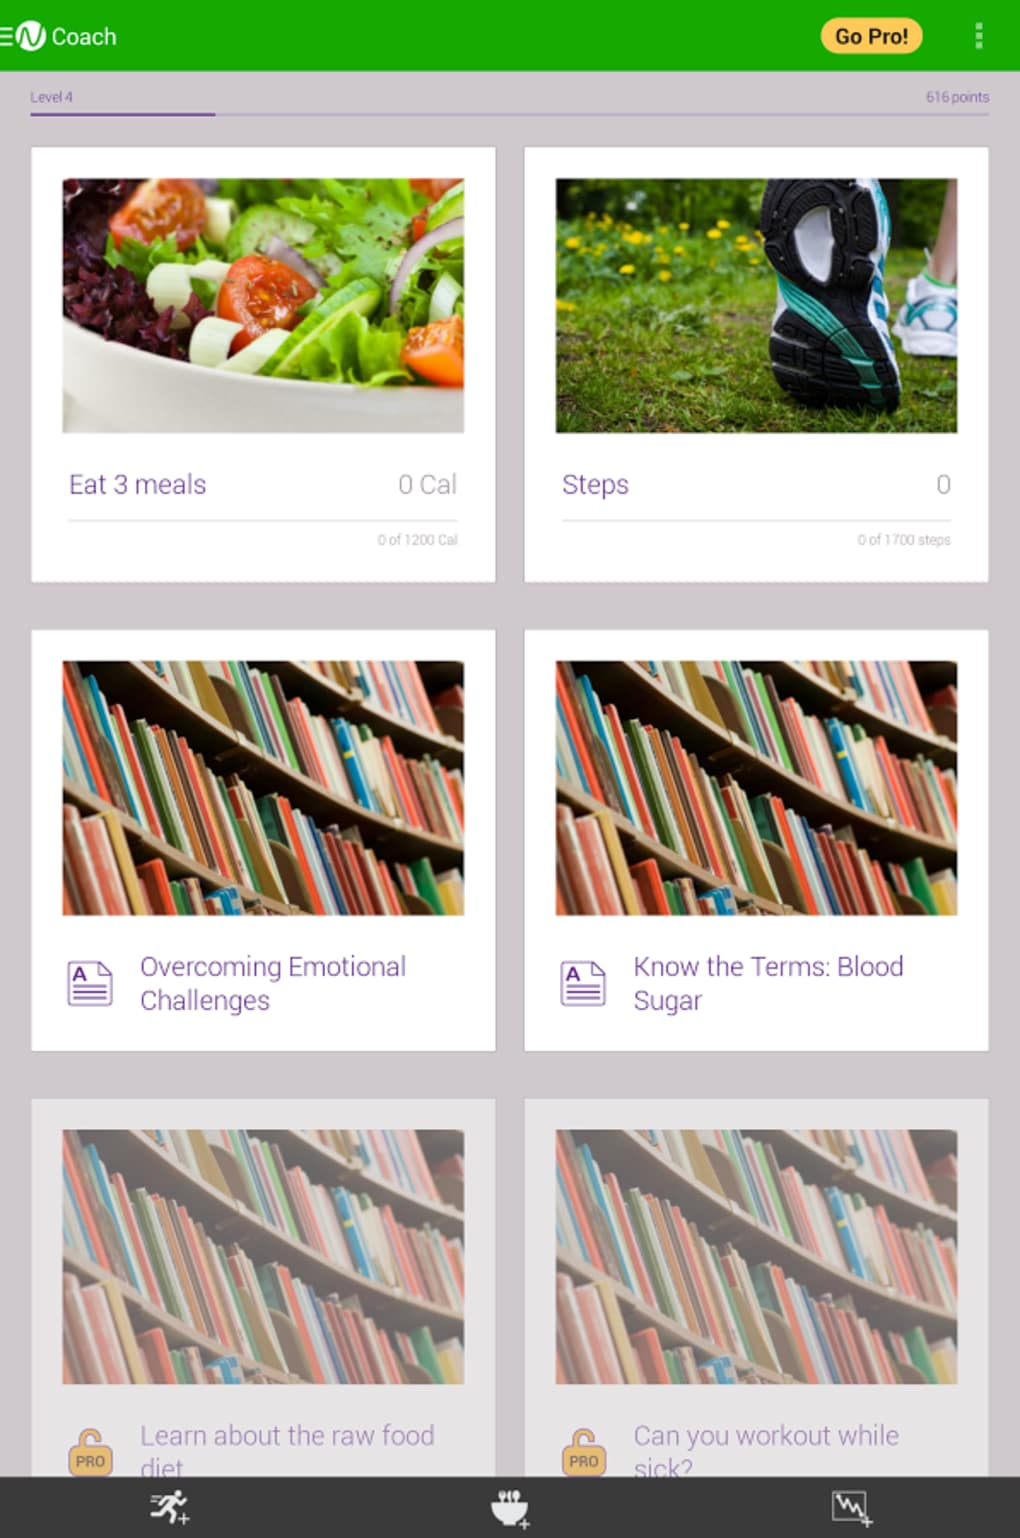 Noom Weight Loss Coach for Android - Download